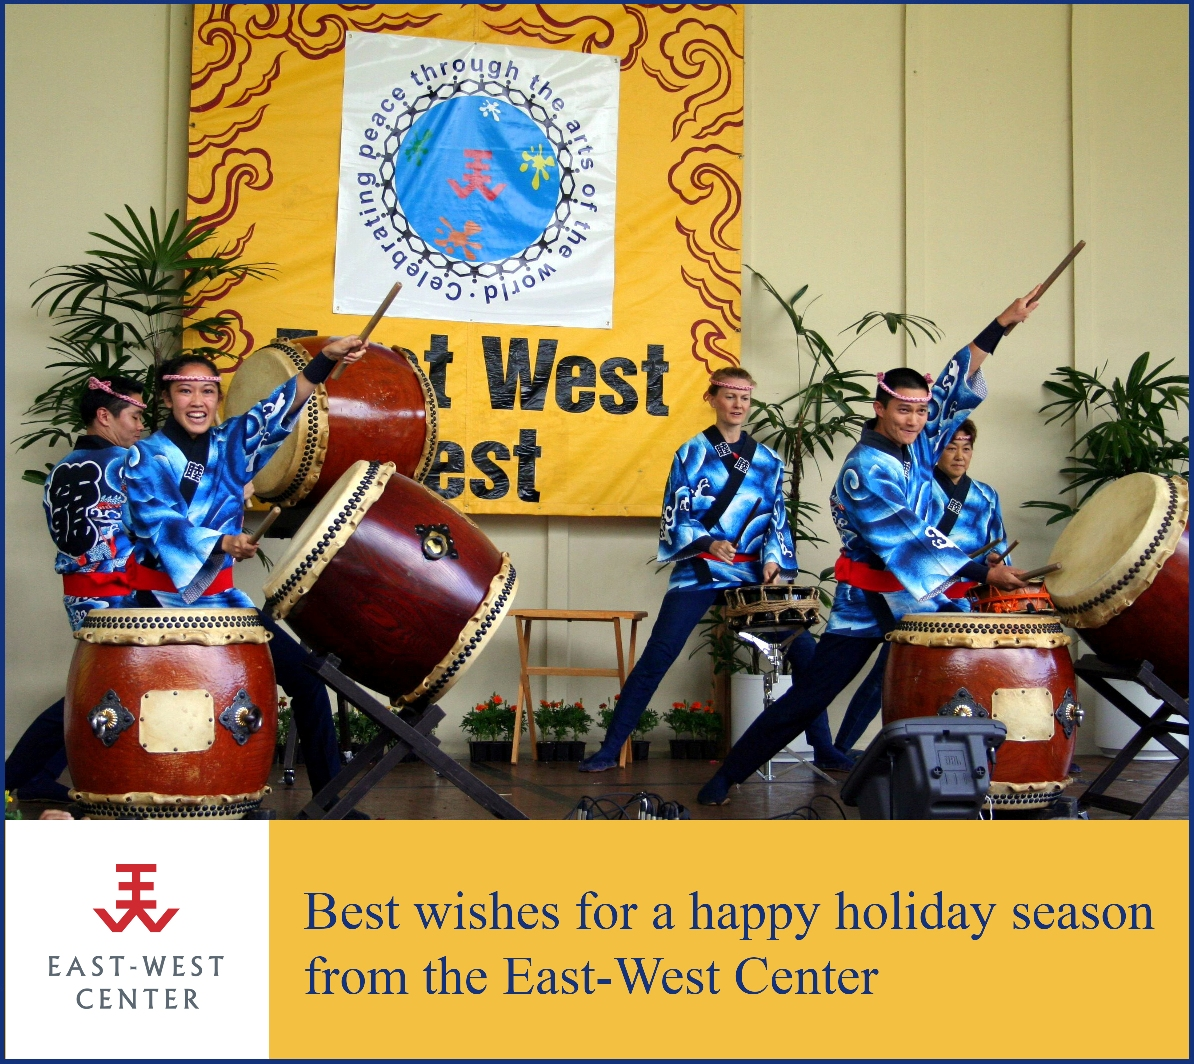 Season's greeting from the East-West Center